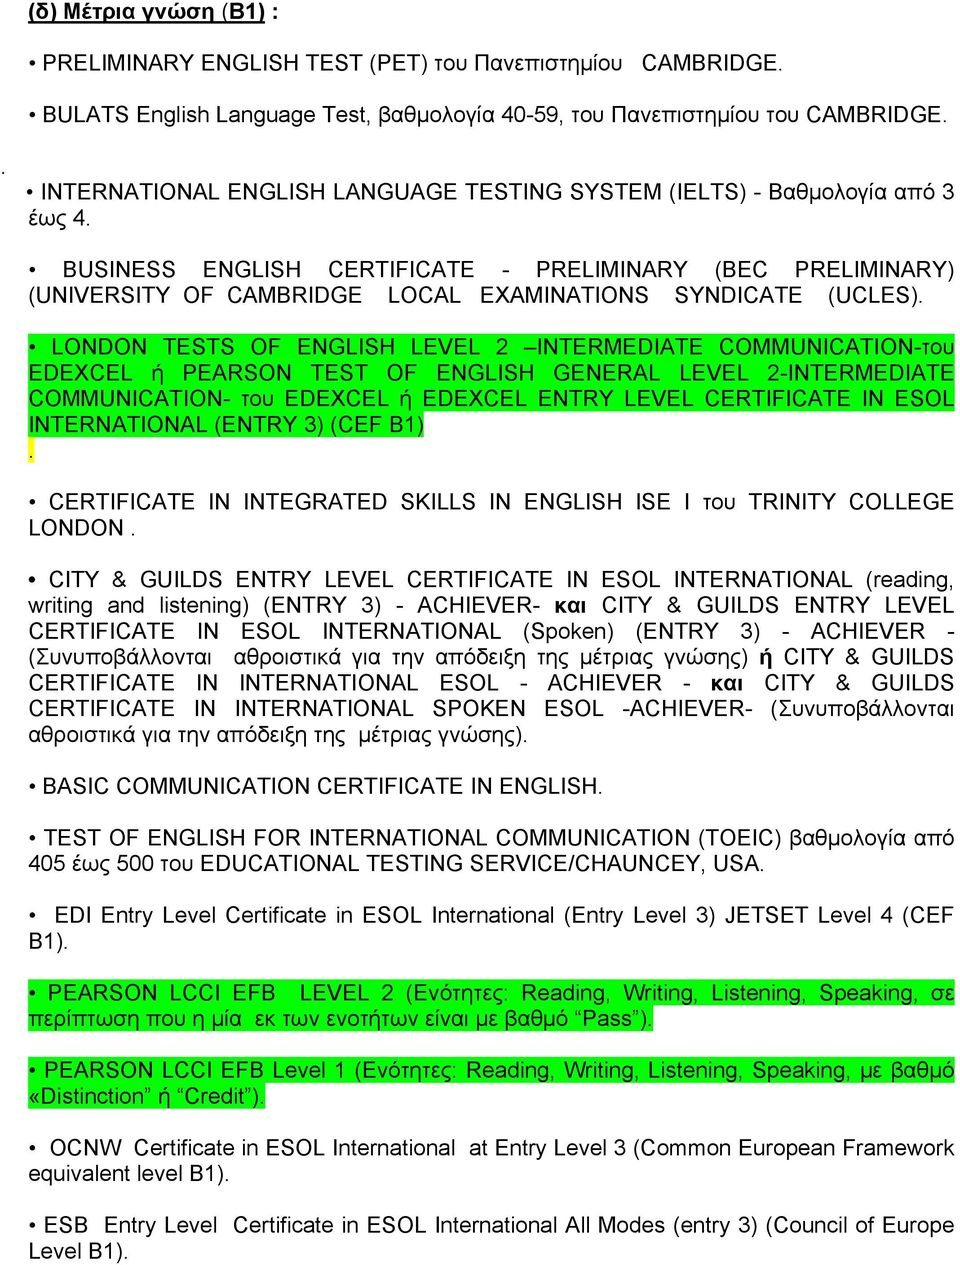 BUSINESS ENGLISH CERTIFICATE - PRELIMINARY (BEC PRELIMINARY) (UNIVERSITY OF CAMBRIDGE LOCAL EXAMINATIONS SYNDICATE (UCLES).